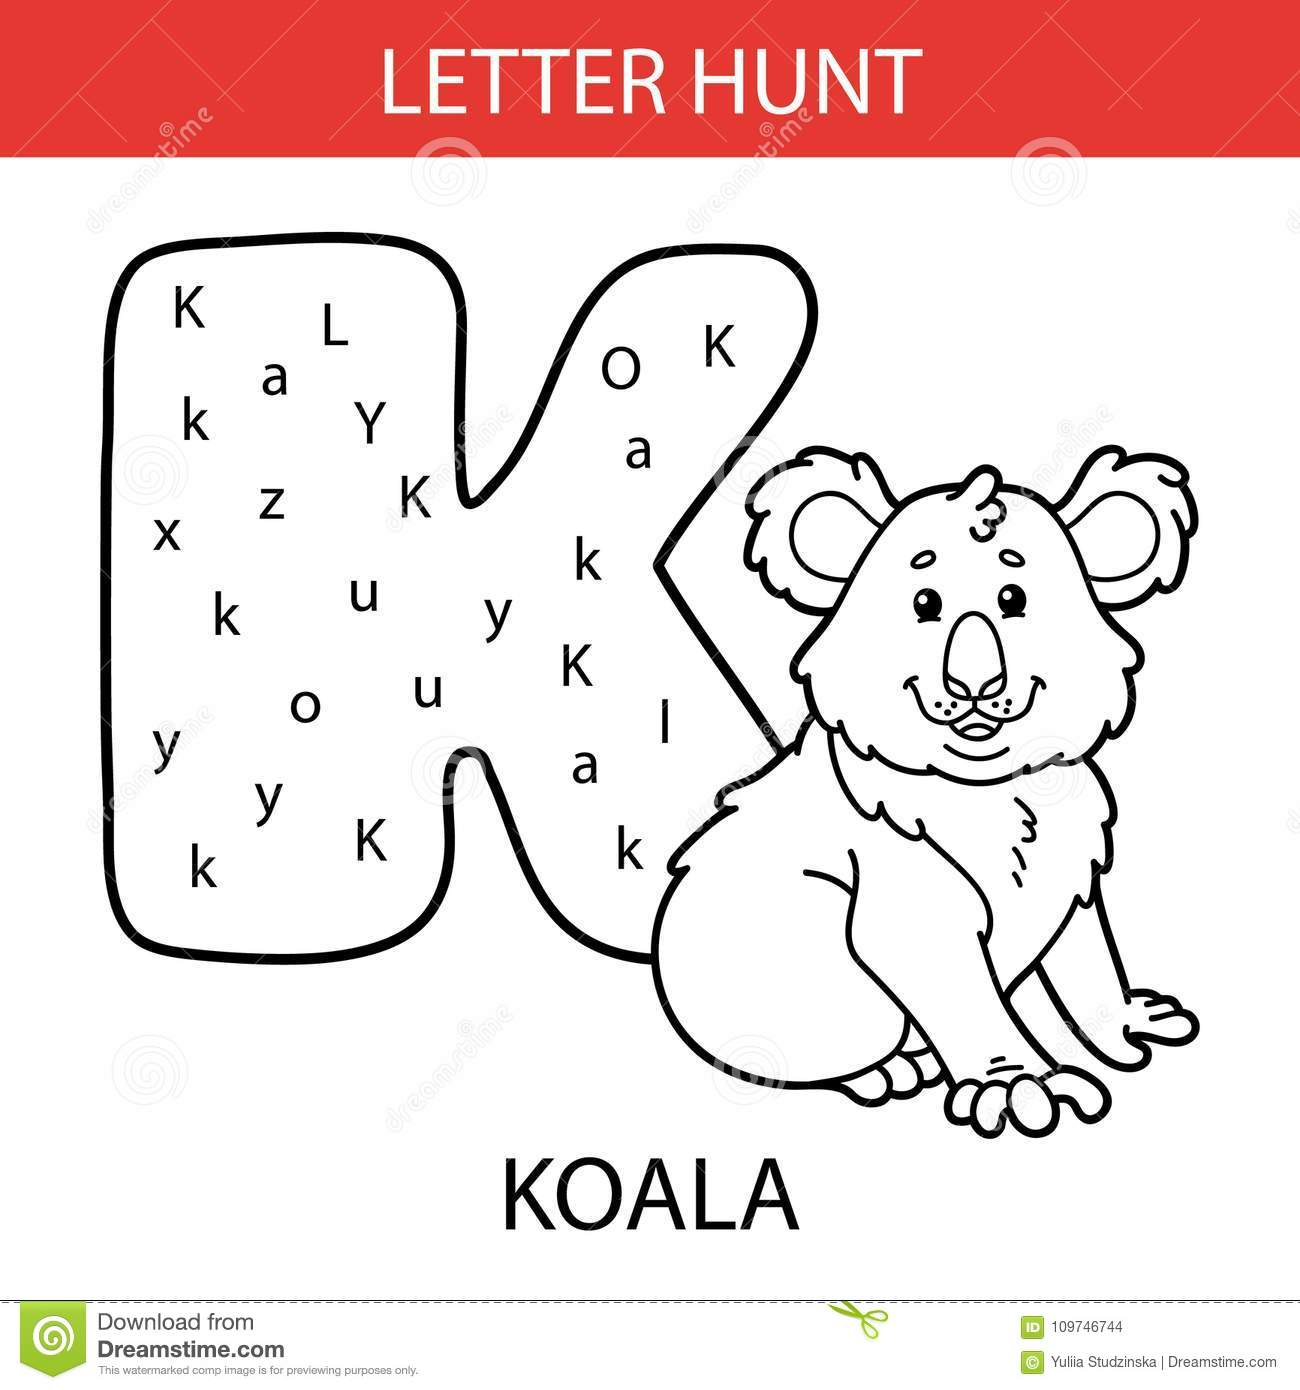 Animal Letter Hunt Koala Stock Vector Illustration Of Childhood